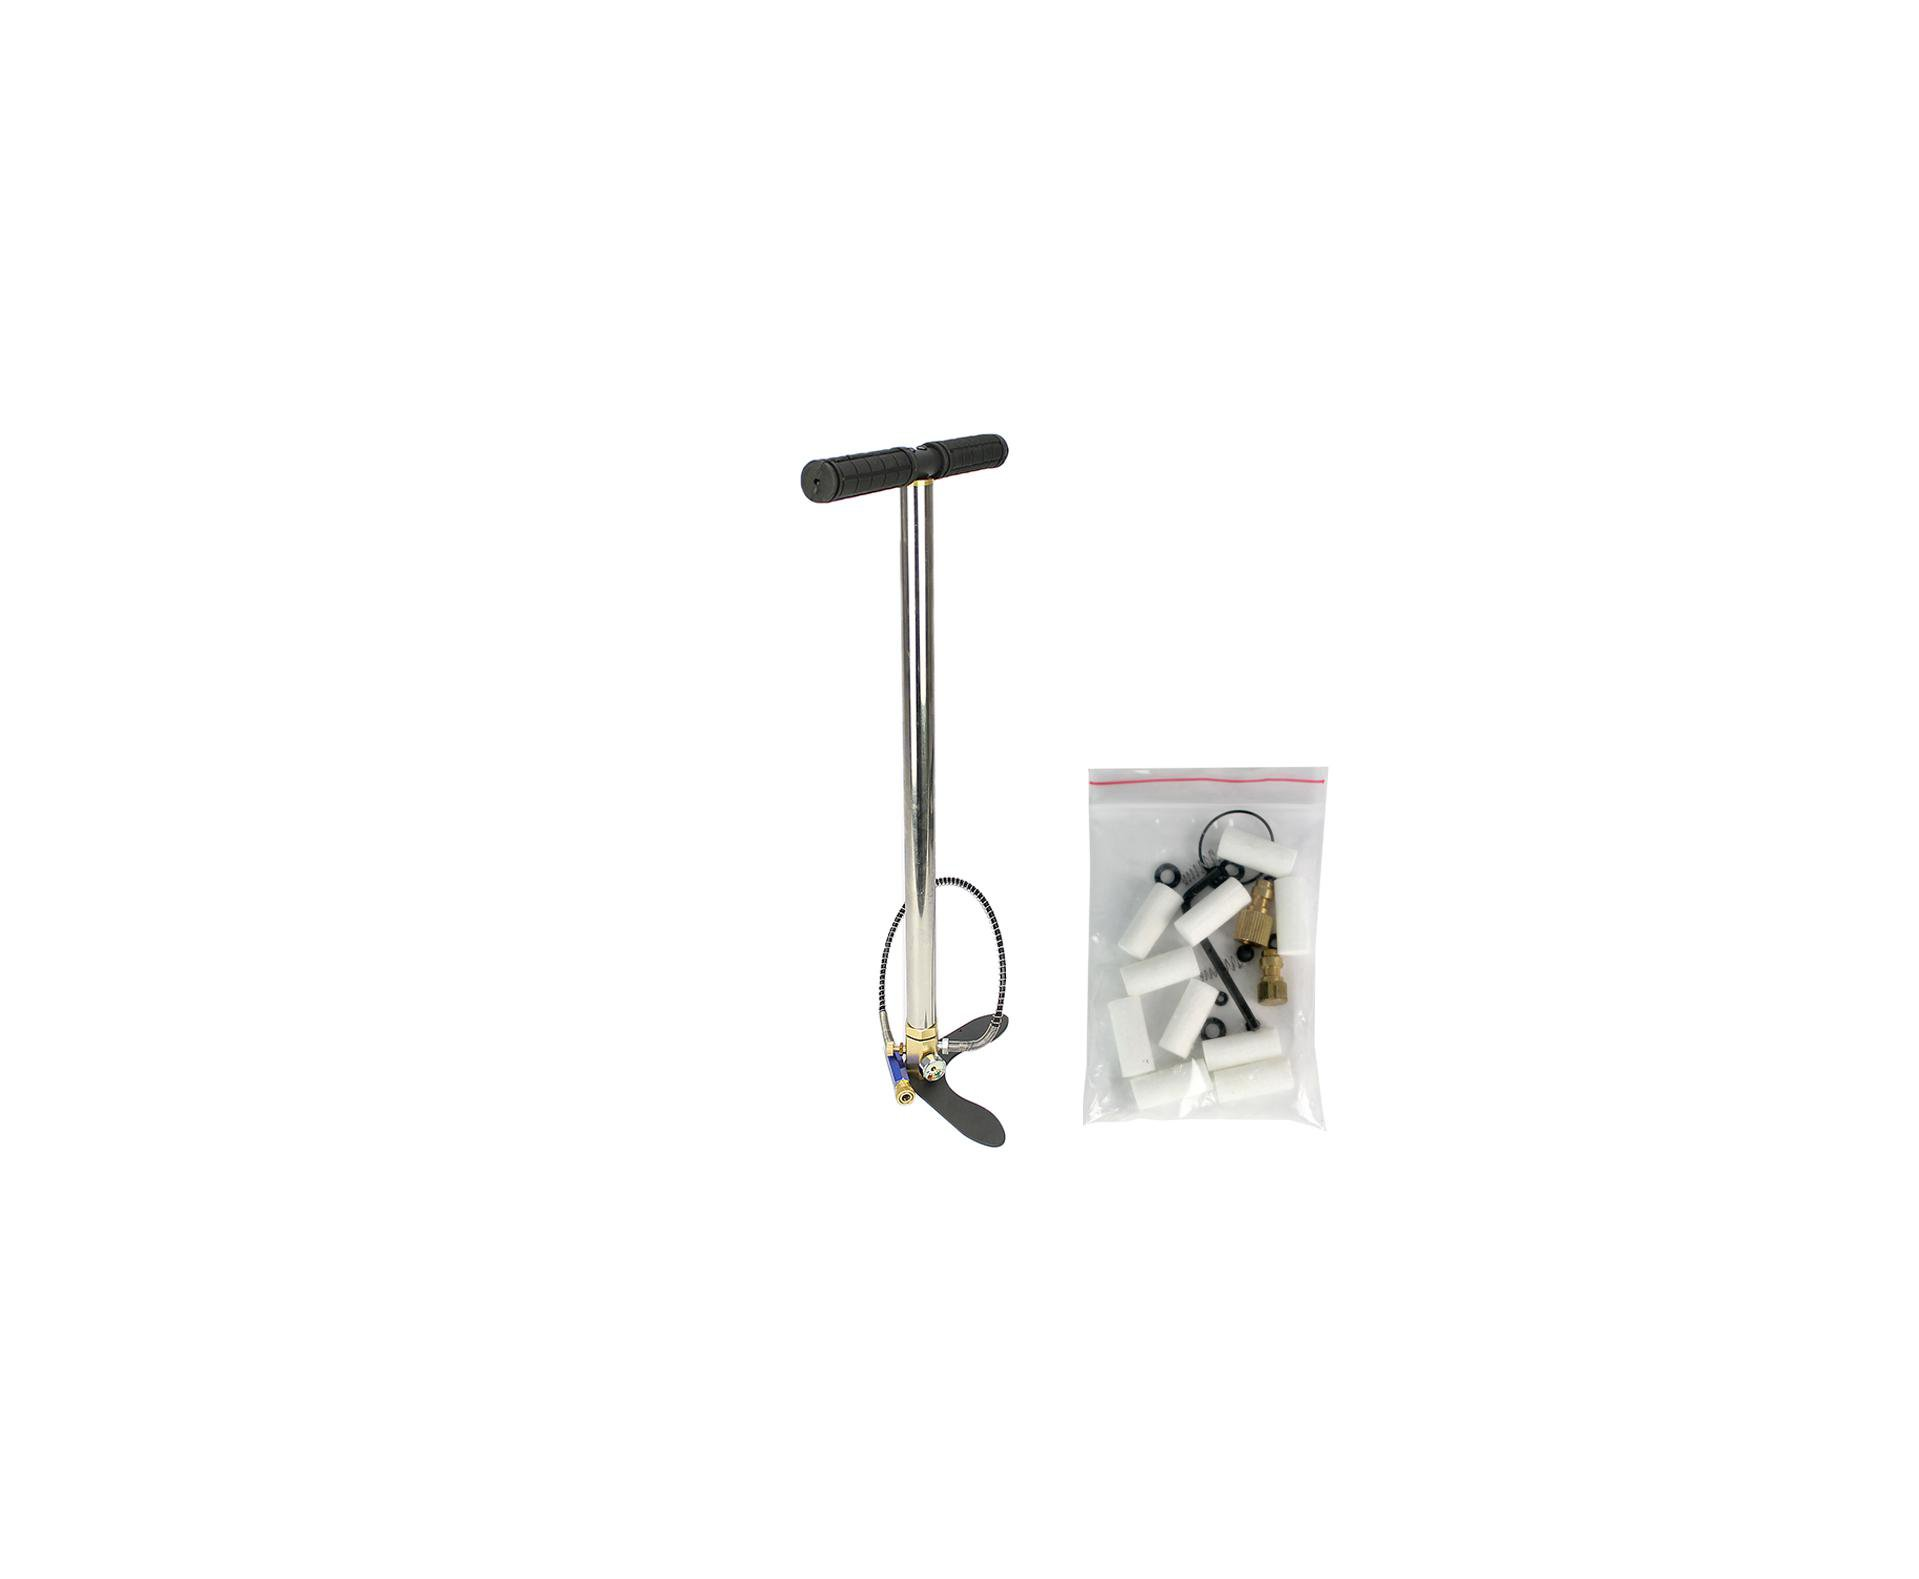 Bomba Hand Pump Pneumatica Manual Pcp 300bar - Fxr